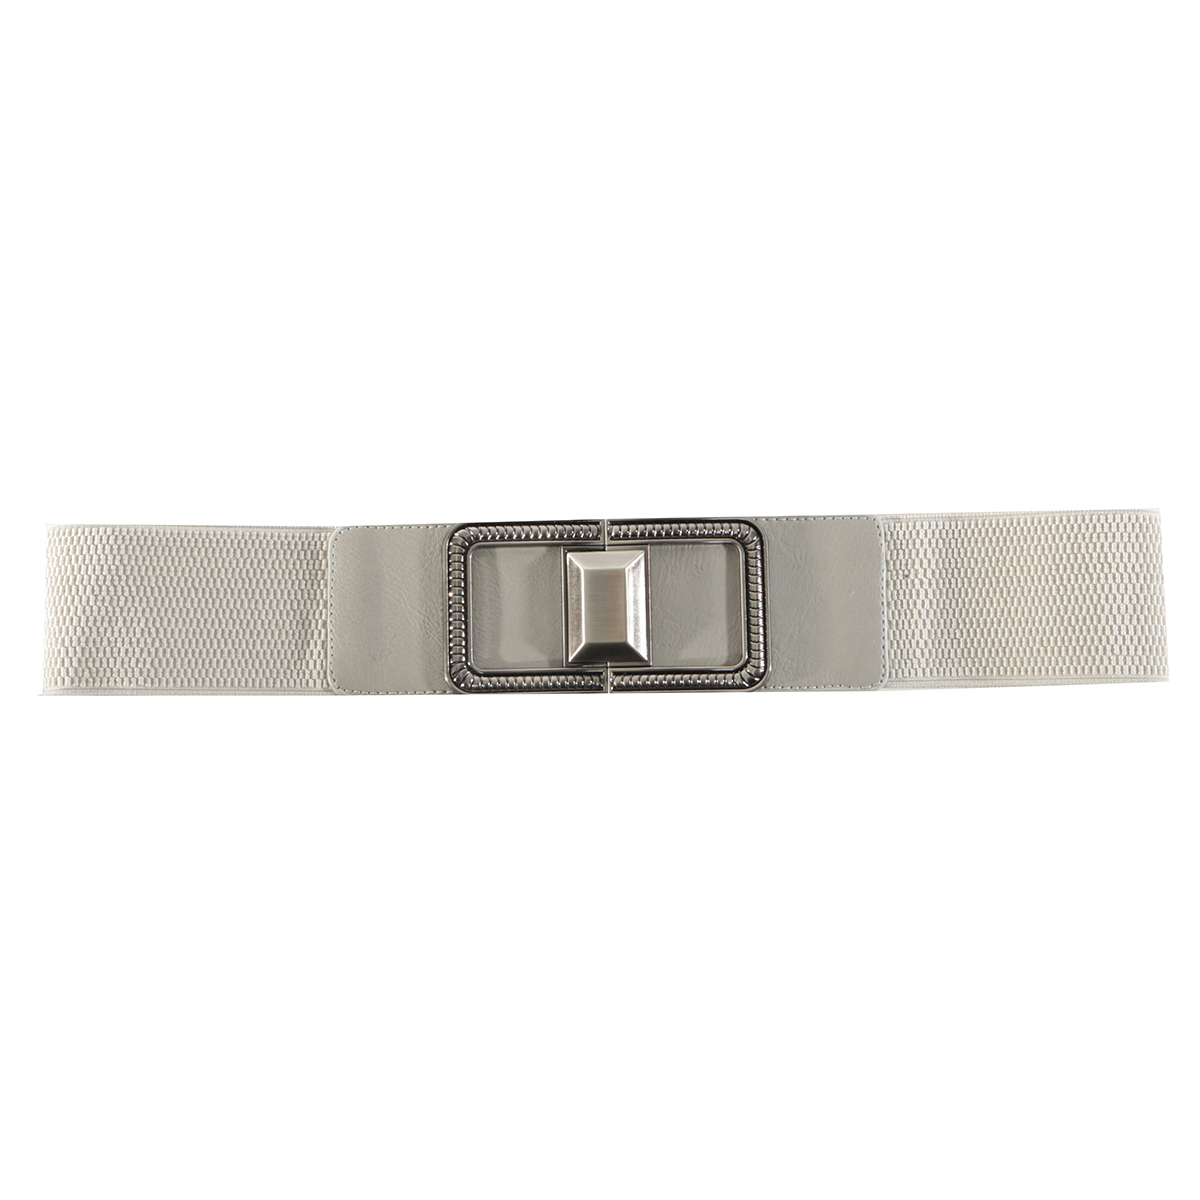 "Grey 31"" SQUARE BUCKLE BELT"